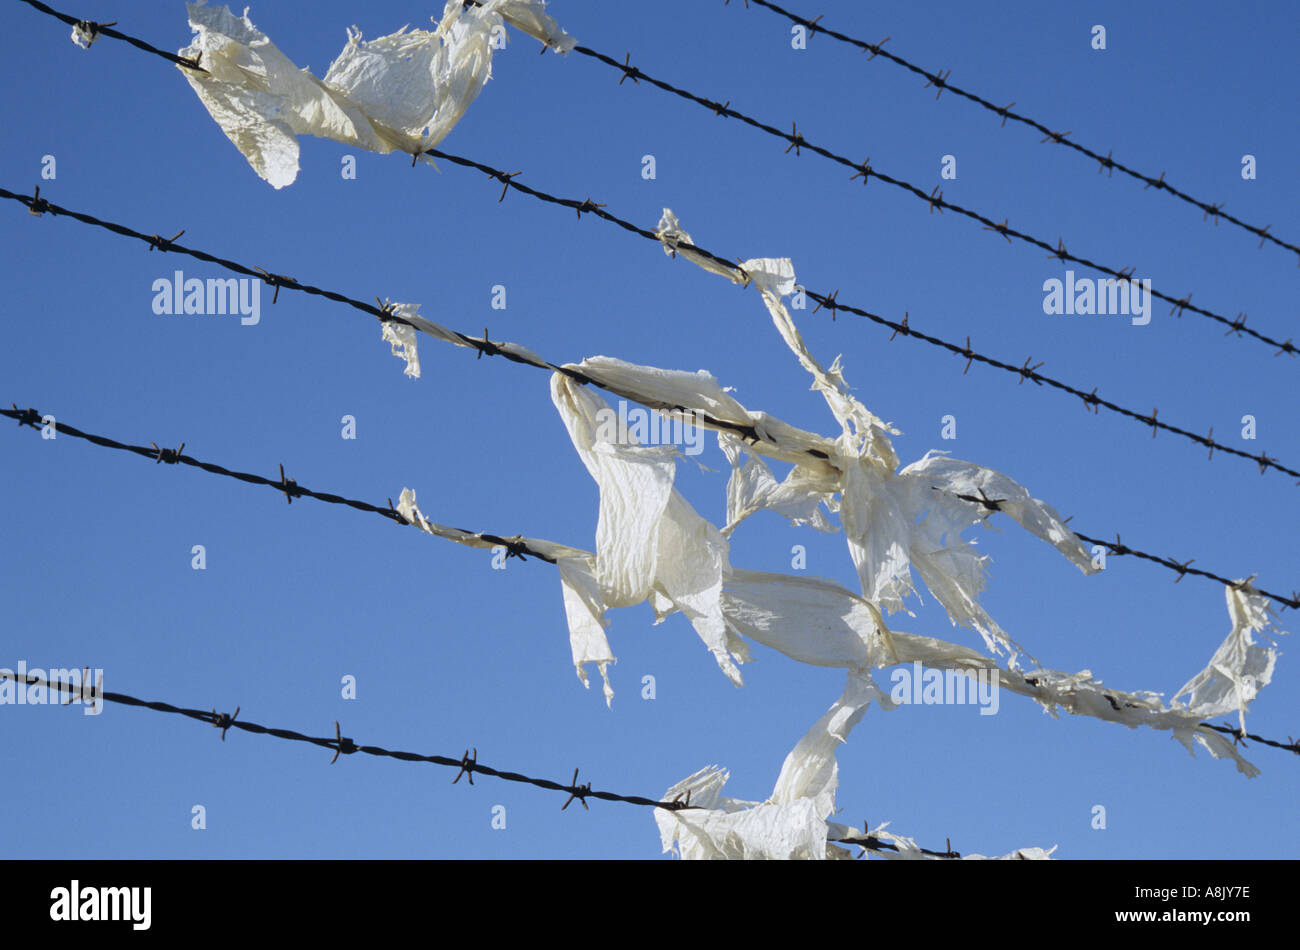 Litter Louts Stock Photos & Litter Louts Stock Images - Alamy